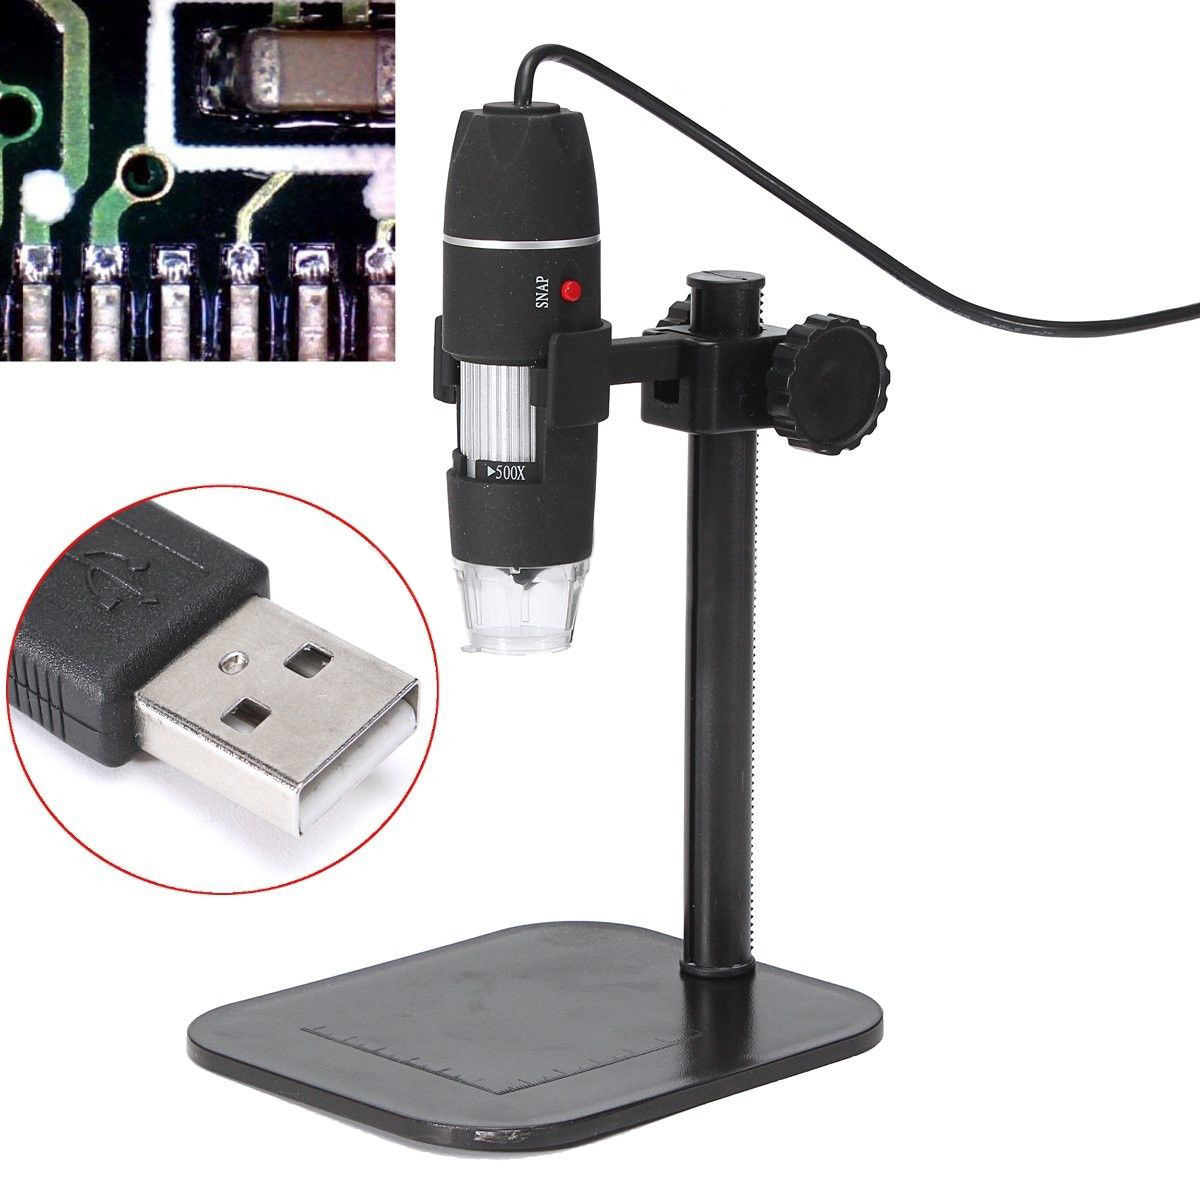 5MP Digital Camera Microscope Magnifier 1X-500X 5V DC Video Black Electronic USB Microscopes With Lift Stand Measuring Tool 600x digital microscope mobile phone maintenance microscope electronic microscope video microscope magnifier with al alloy stent